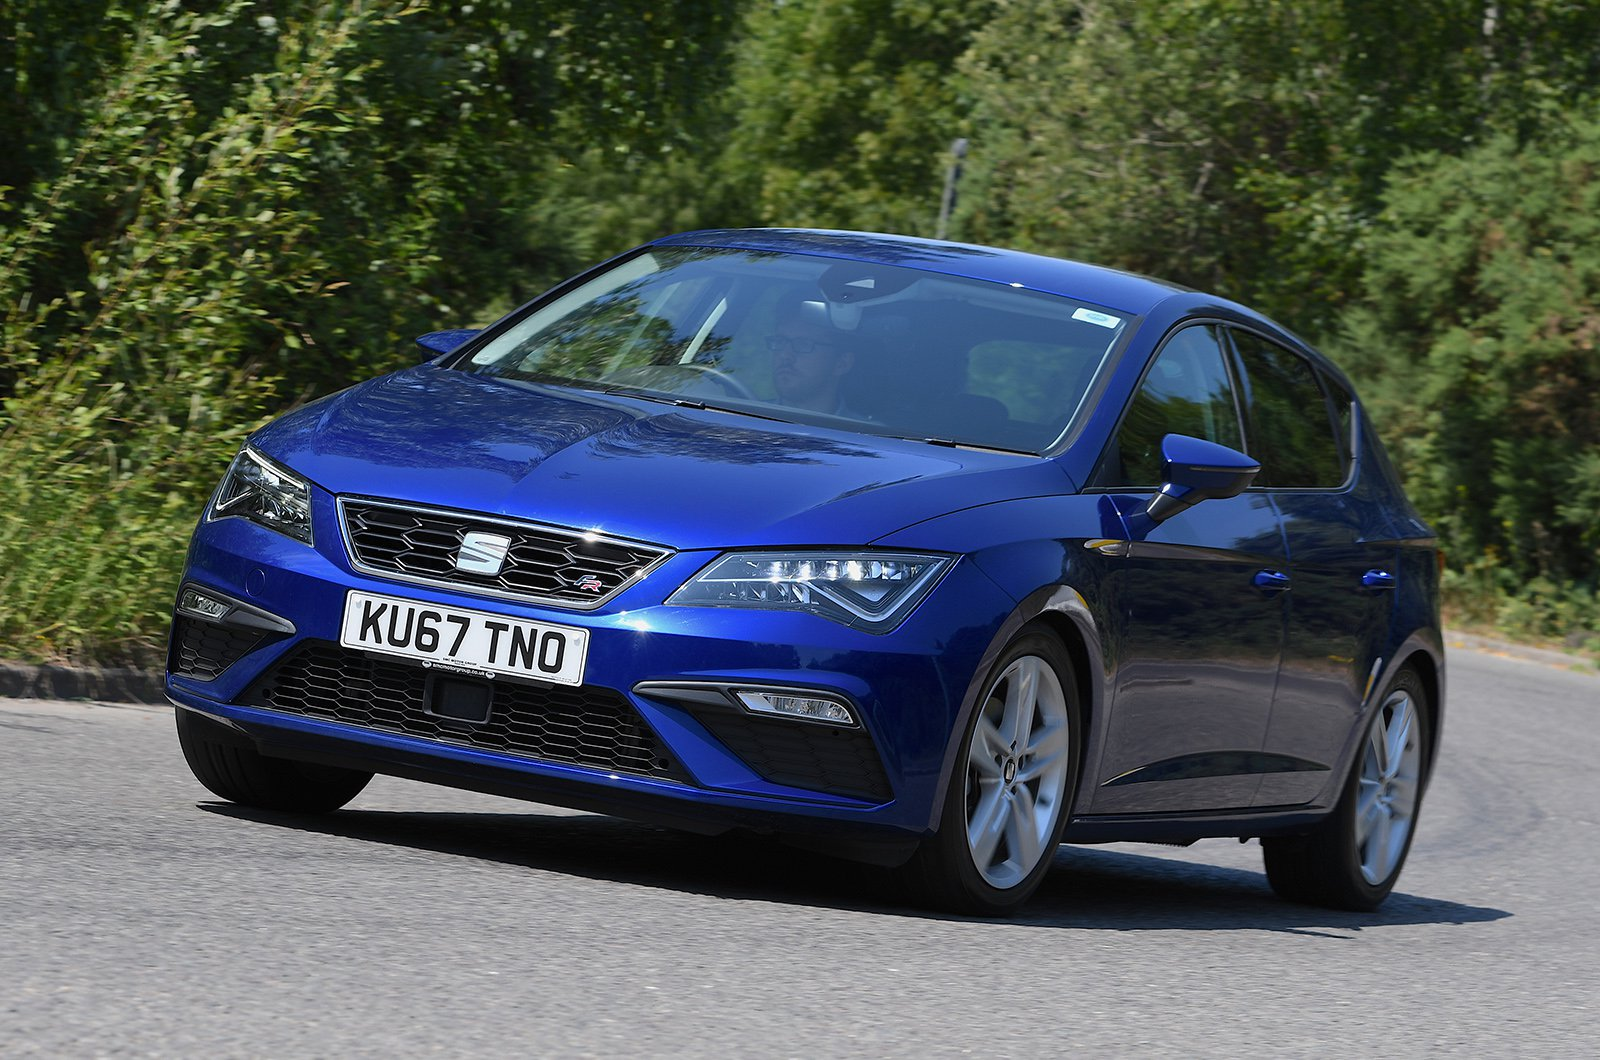 Used Seat Leon (2013-present) long term test